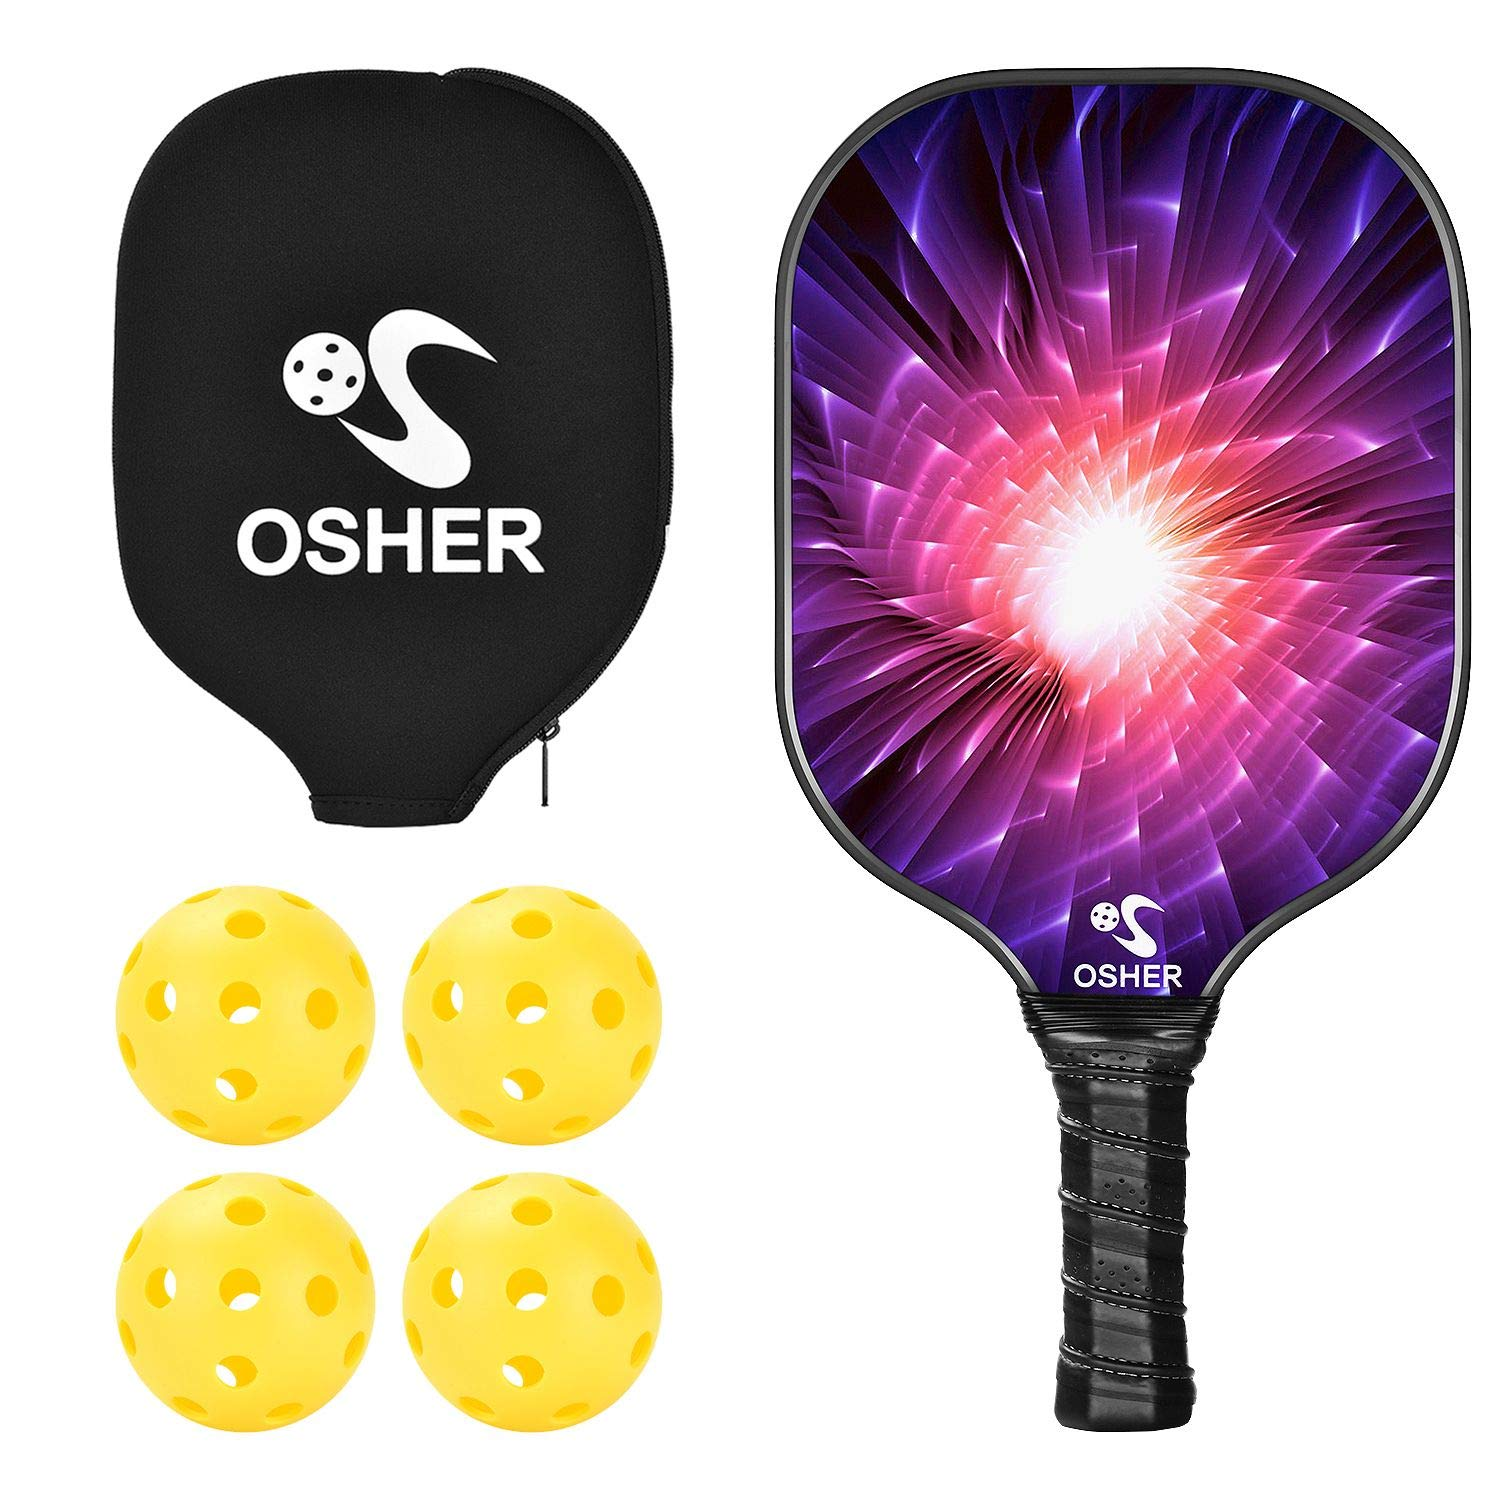 OSHER Pickleball Paddle with 4 Pickballs Pink Graphite Pickleball Racket Honeycomb Composite Core Pickleball Paddle Set Ultra Cushion Grip Low Profile ...